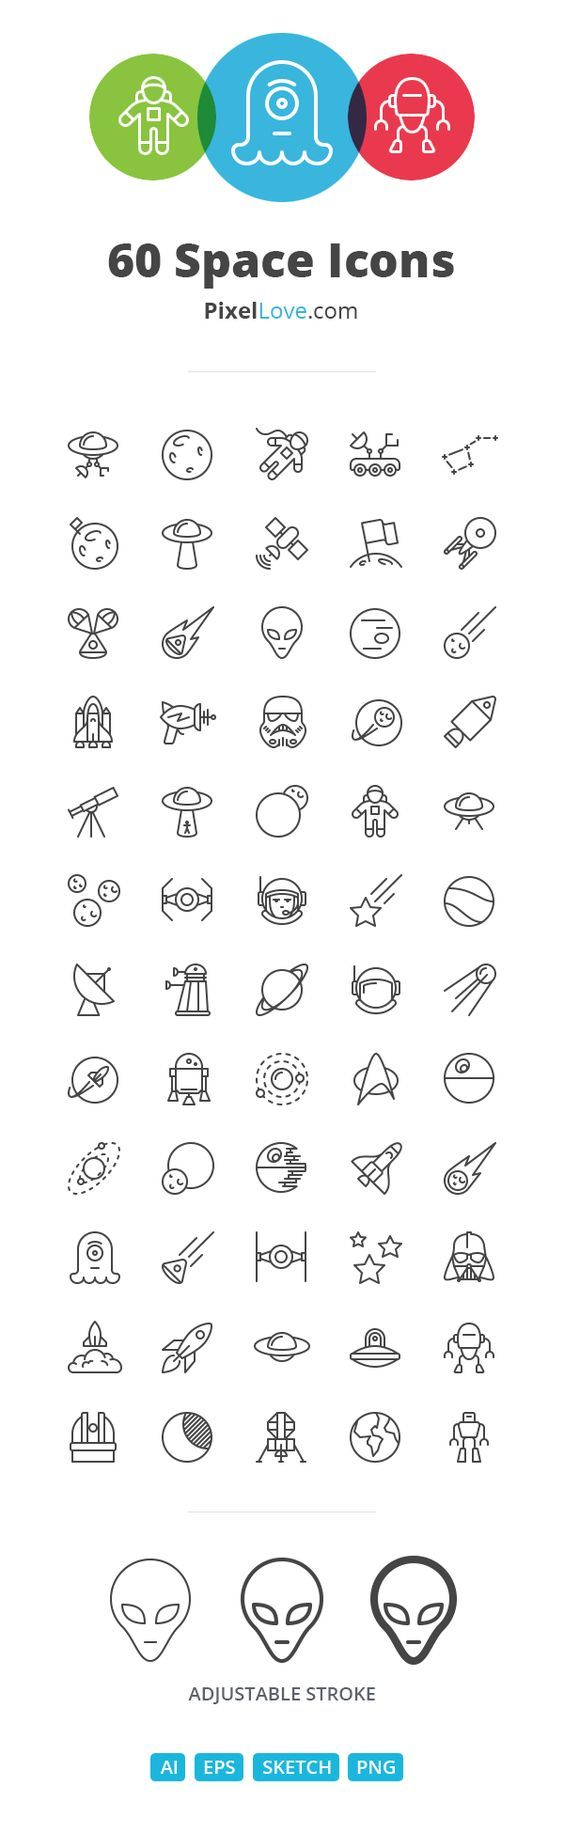 Simple space tattoo ideas pin by laurenhaley whitlock on tattoo ideas  pinterest  spaces